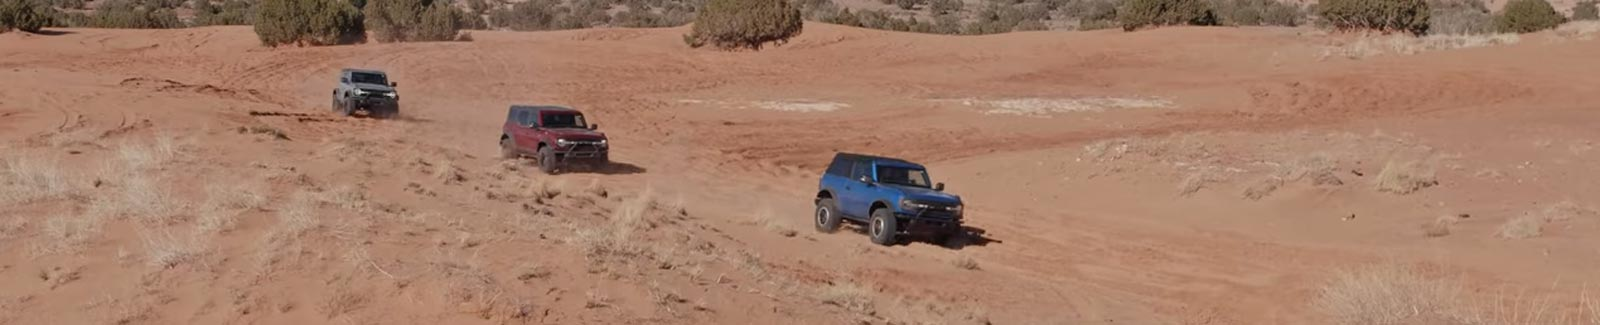 Moab Bronco Ride-along Highlights With Brad Lovell